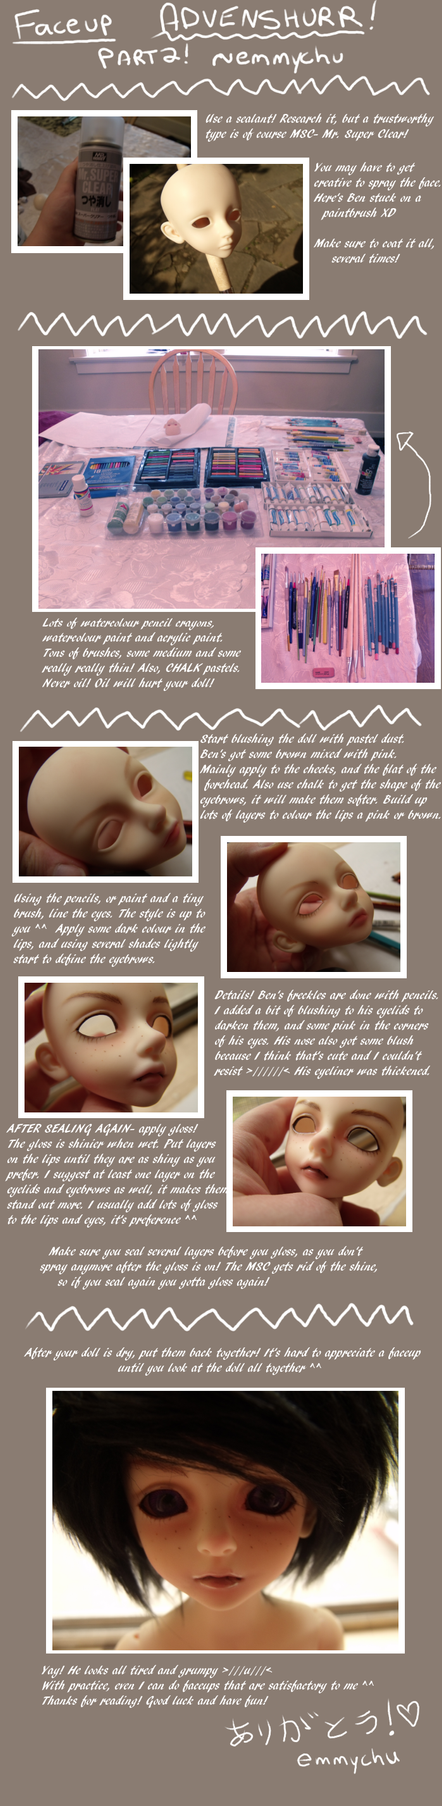 Faceup Tutorial- KDBory Part 2 by emmychu